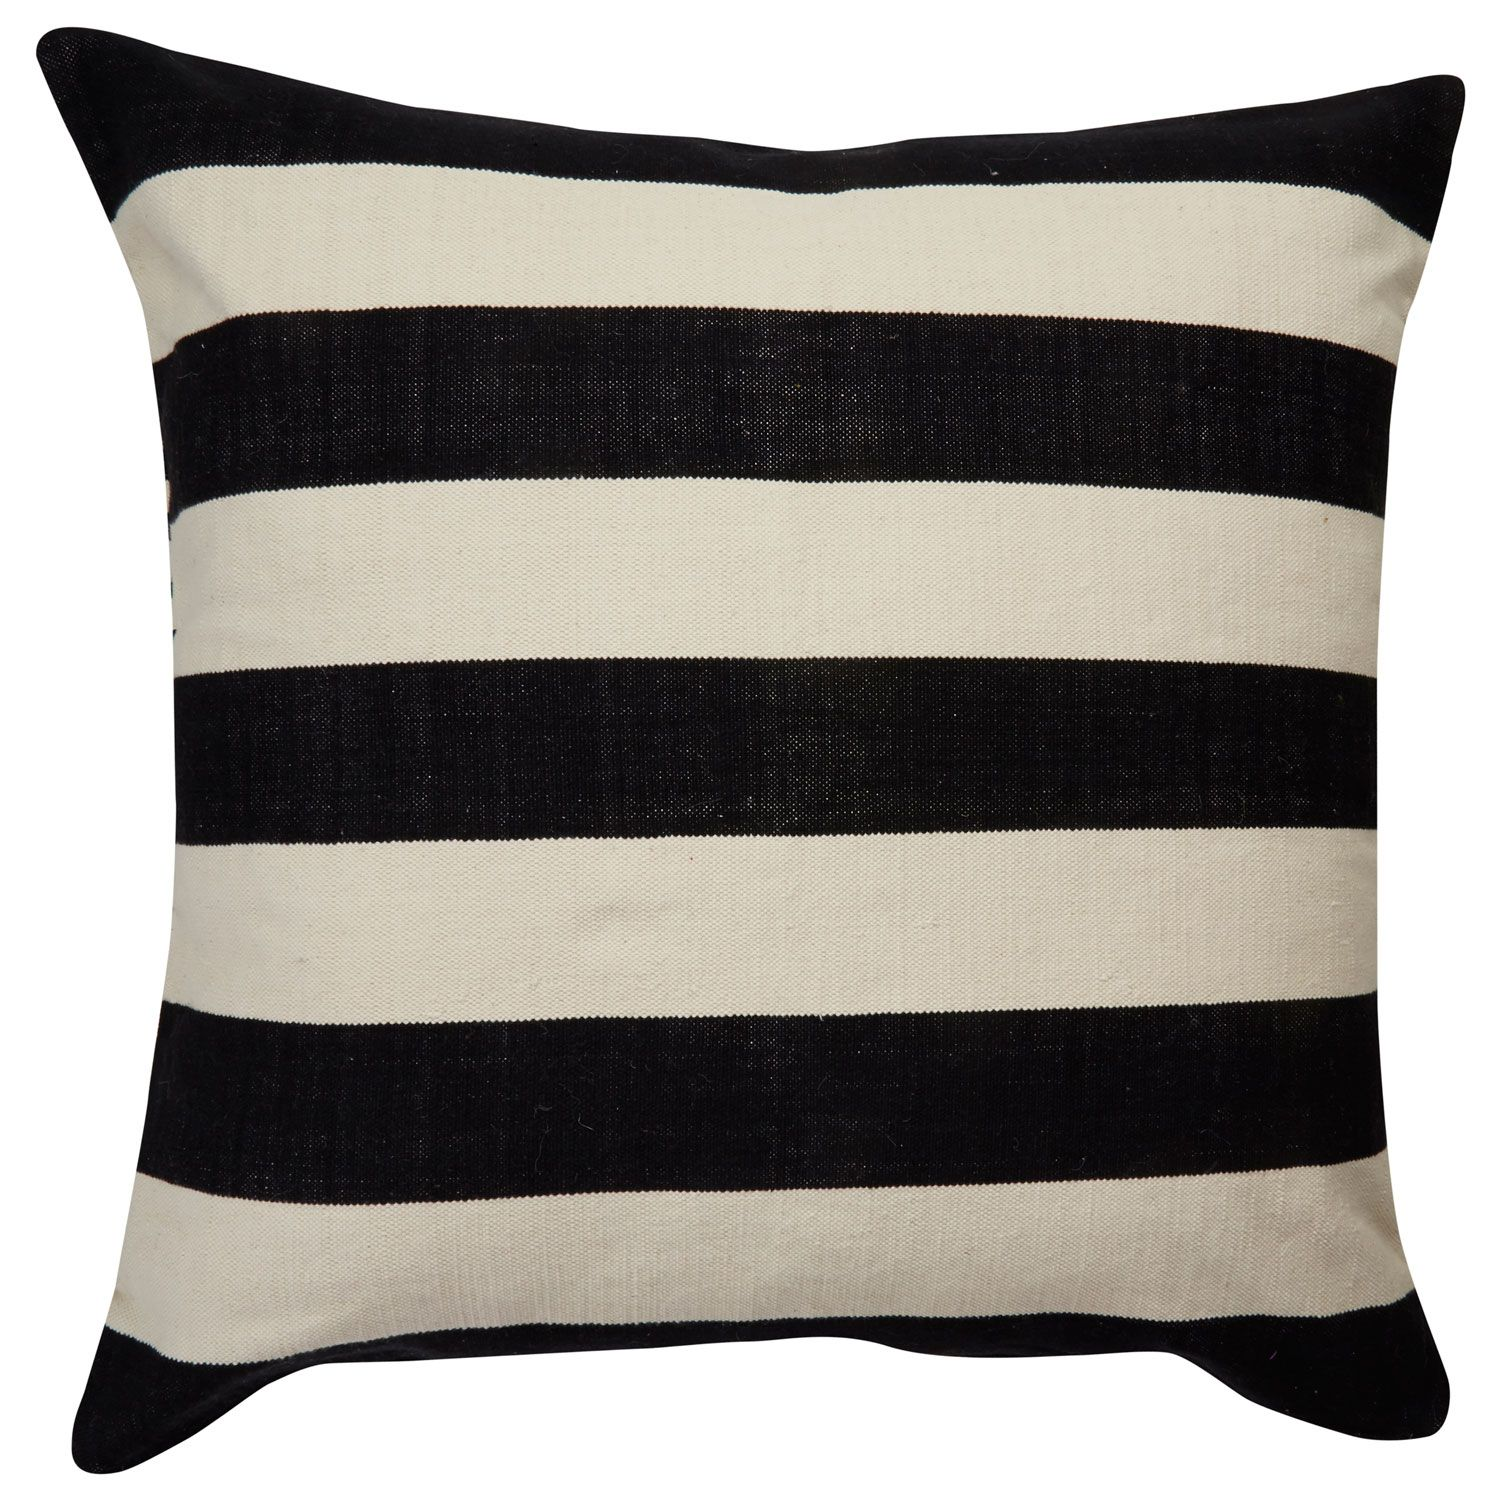 Kate Spade New York by Jaipur Yorkville Double Stripe Black Throw Pillow…